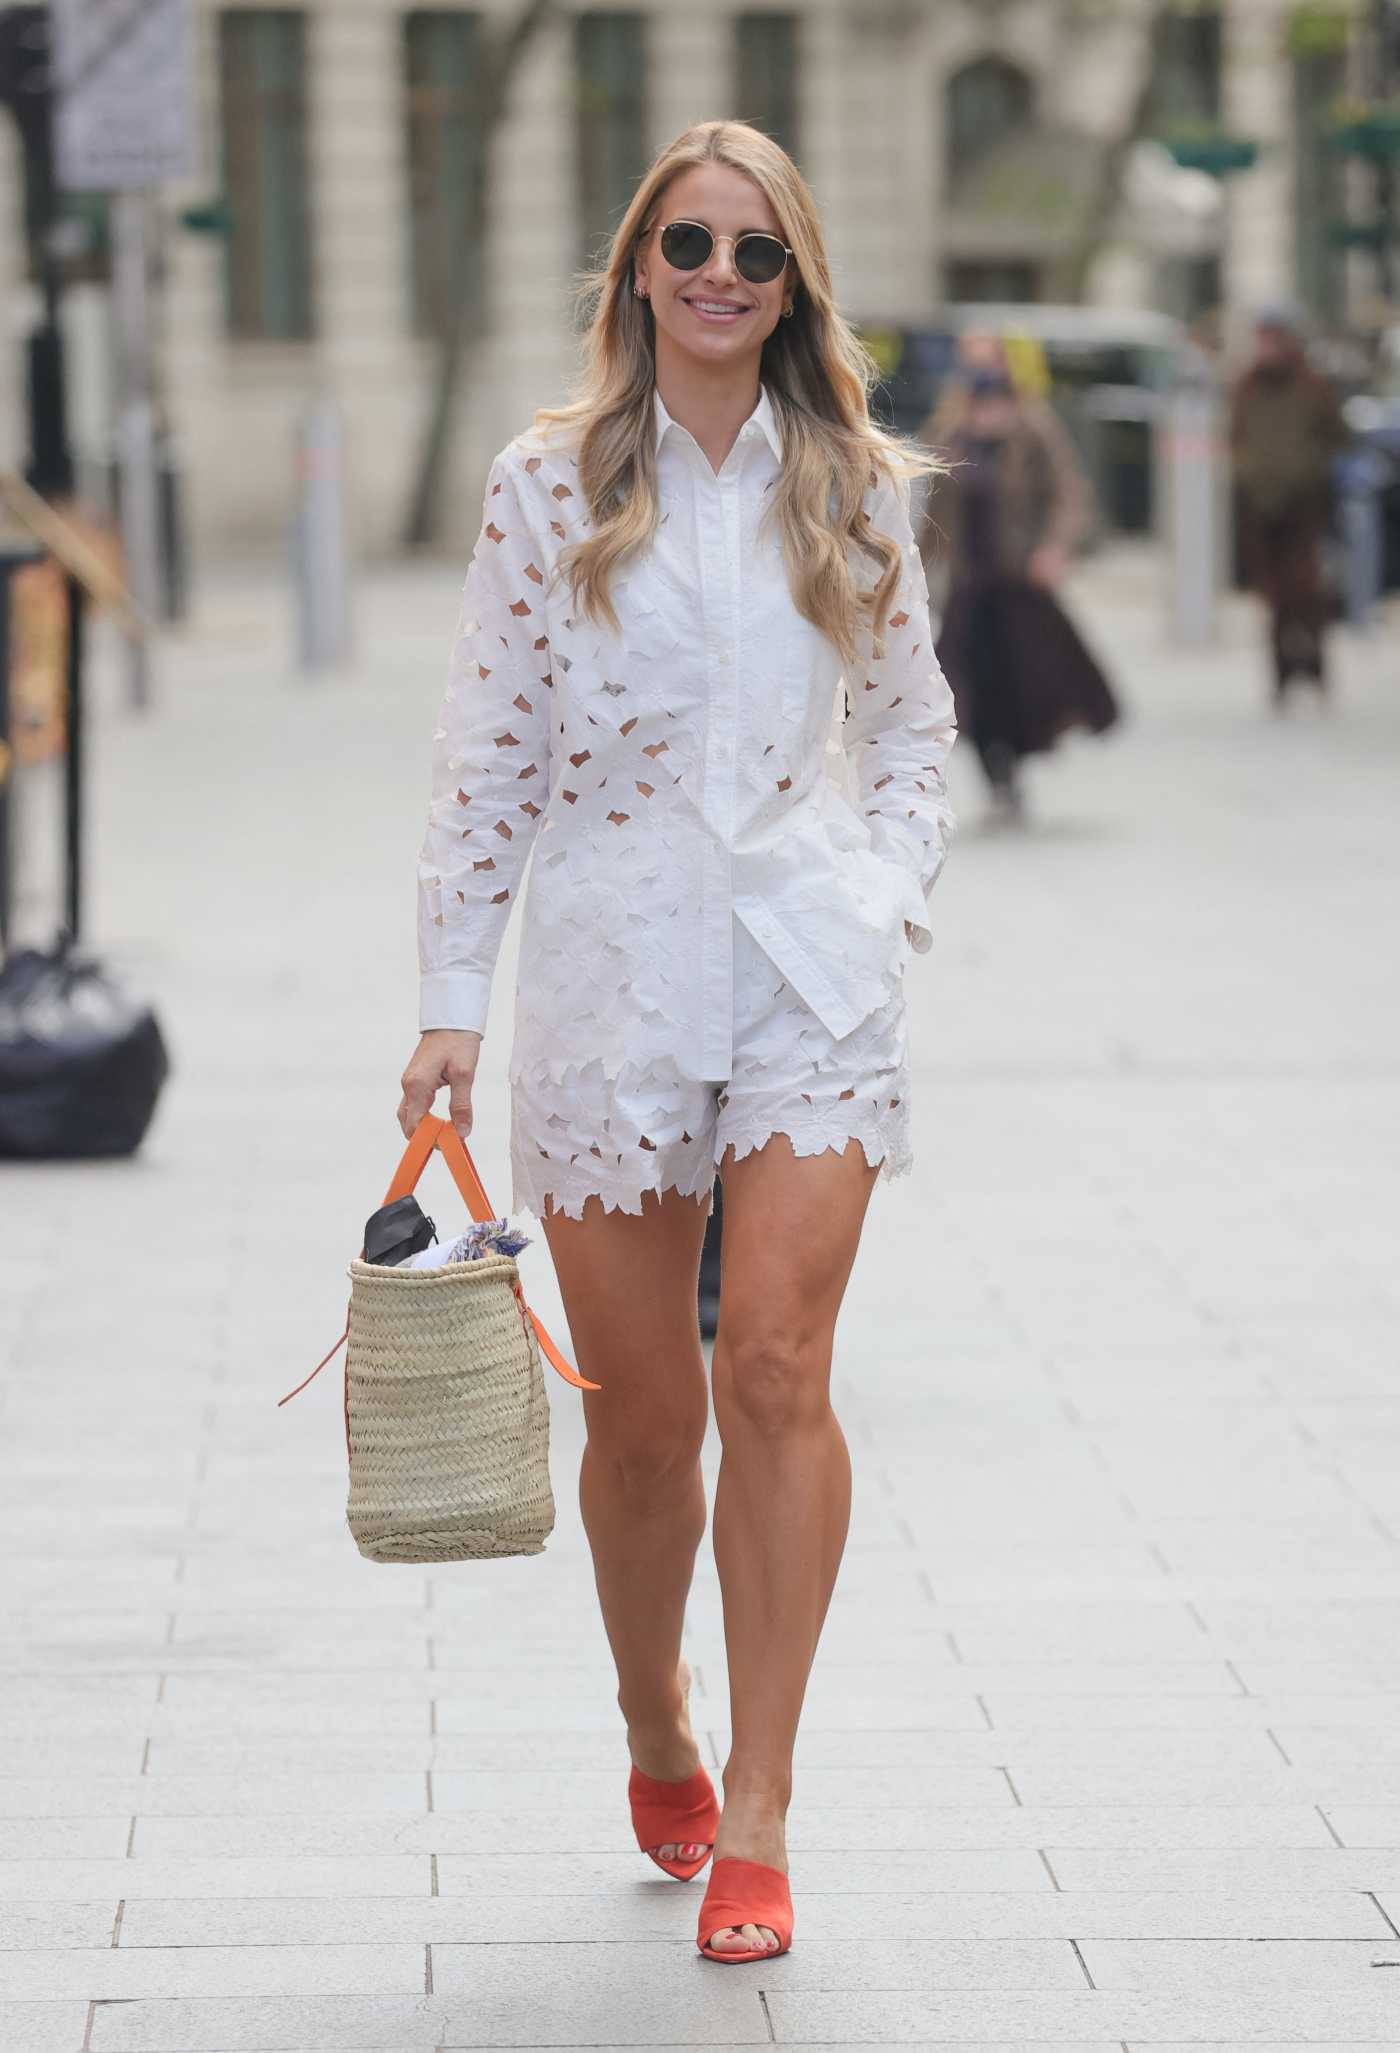 Vogue Williams in a White Summer Suit Arrives at the Heart Radio Studios in London 05/12/2021